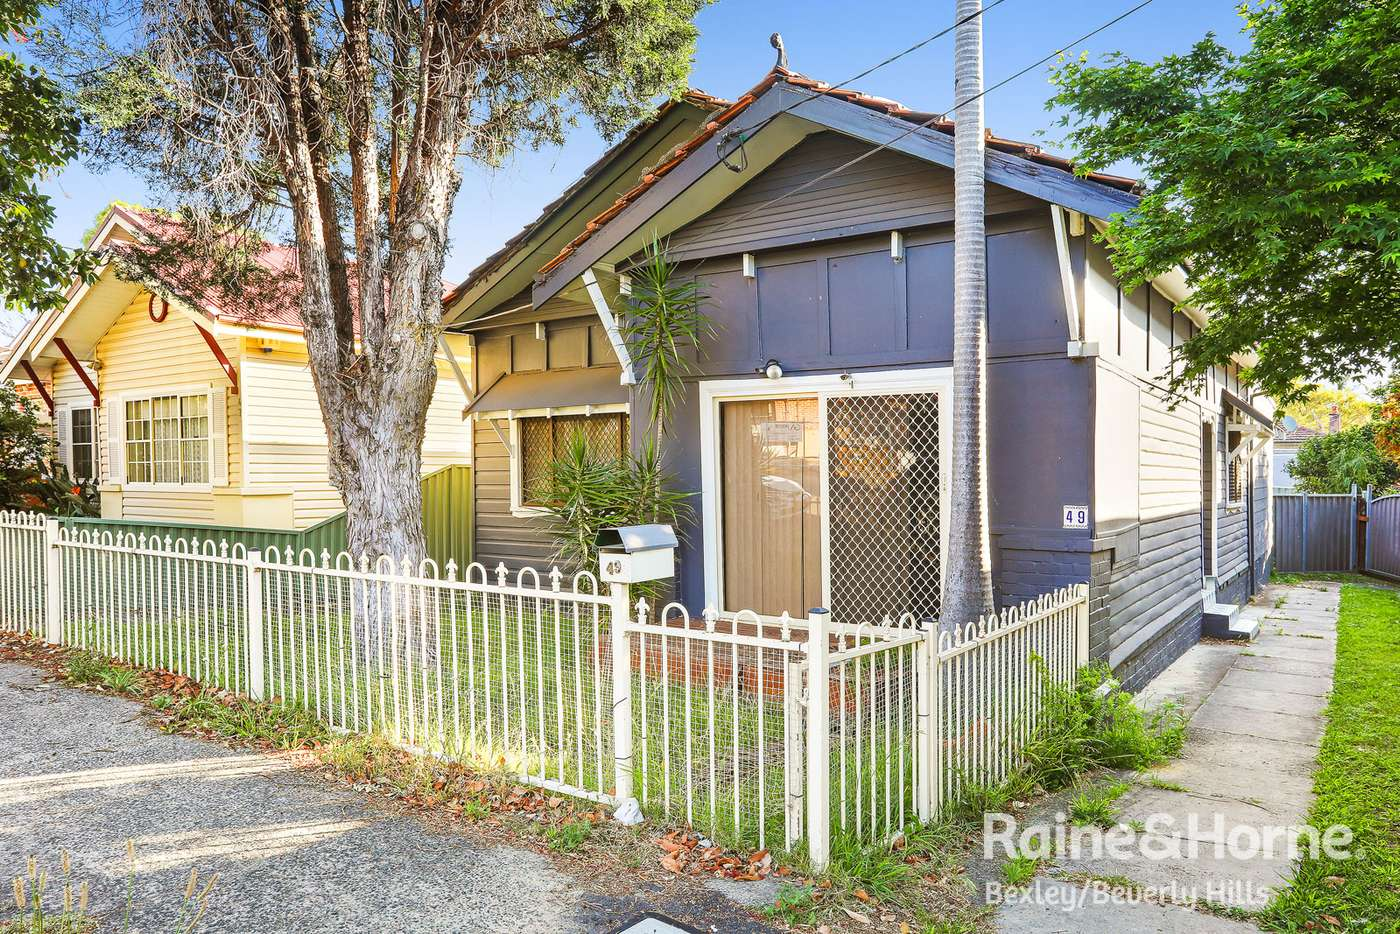 Main view of Homely house listing, 49 Broadford Street, Bexley NSW 2207